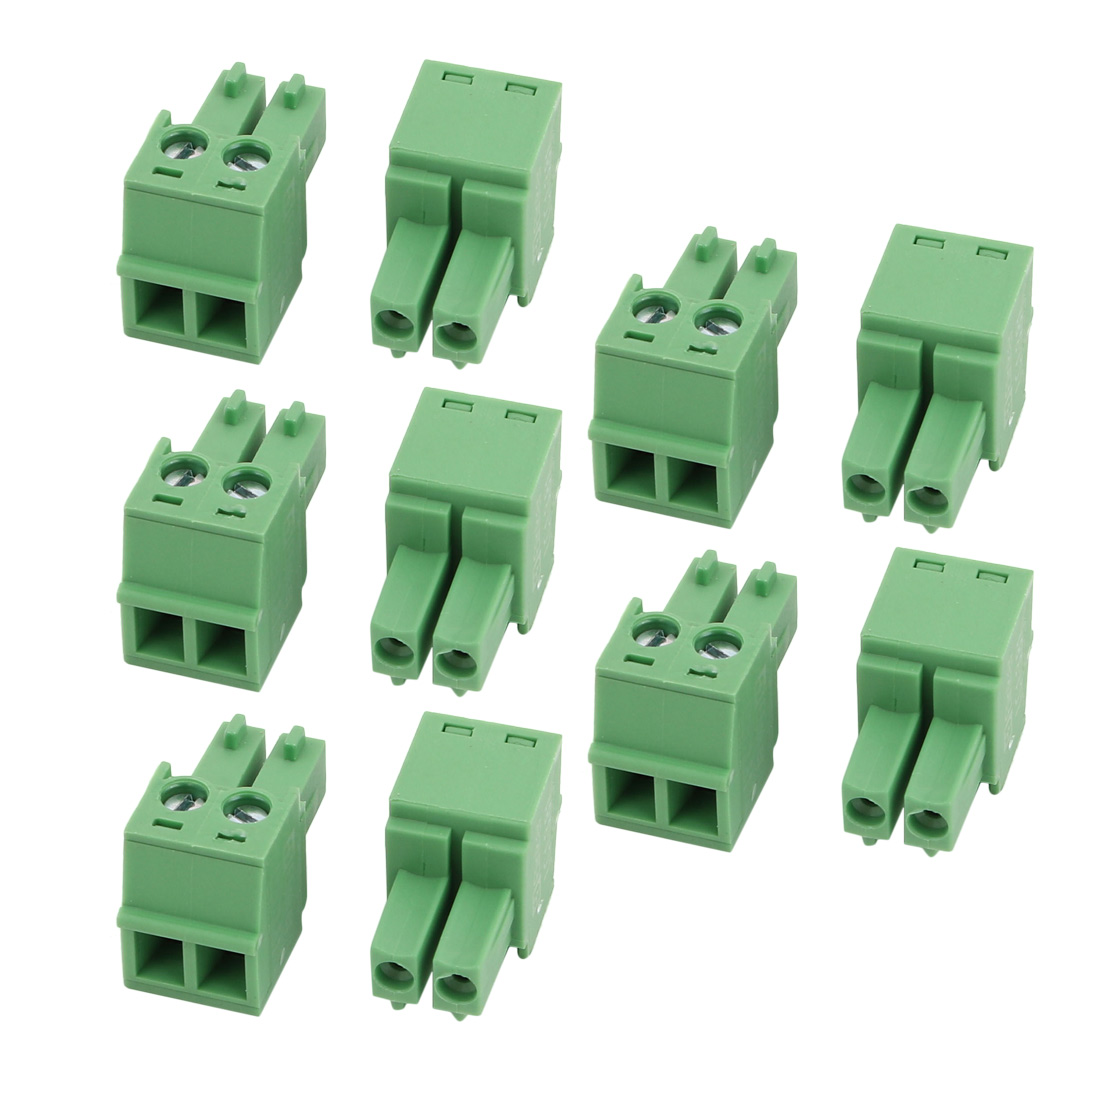 10 Pcs LC1 AC300V 8A 3.81mm Pitch 2P PCB Mount Terminal Block Wire Connector